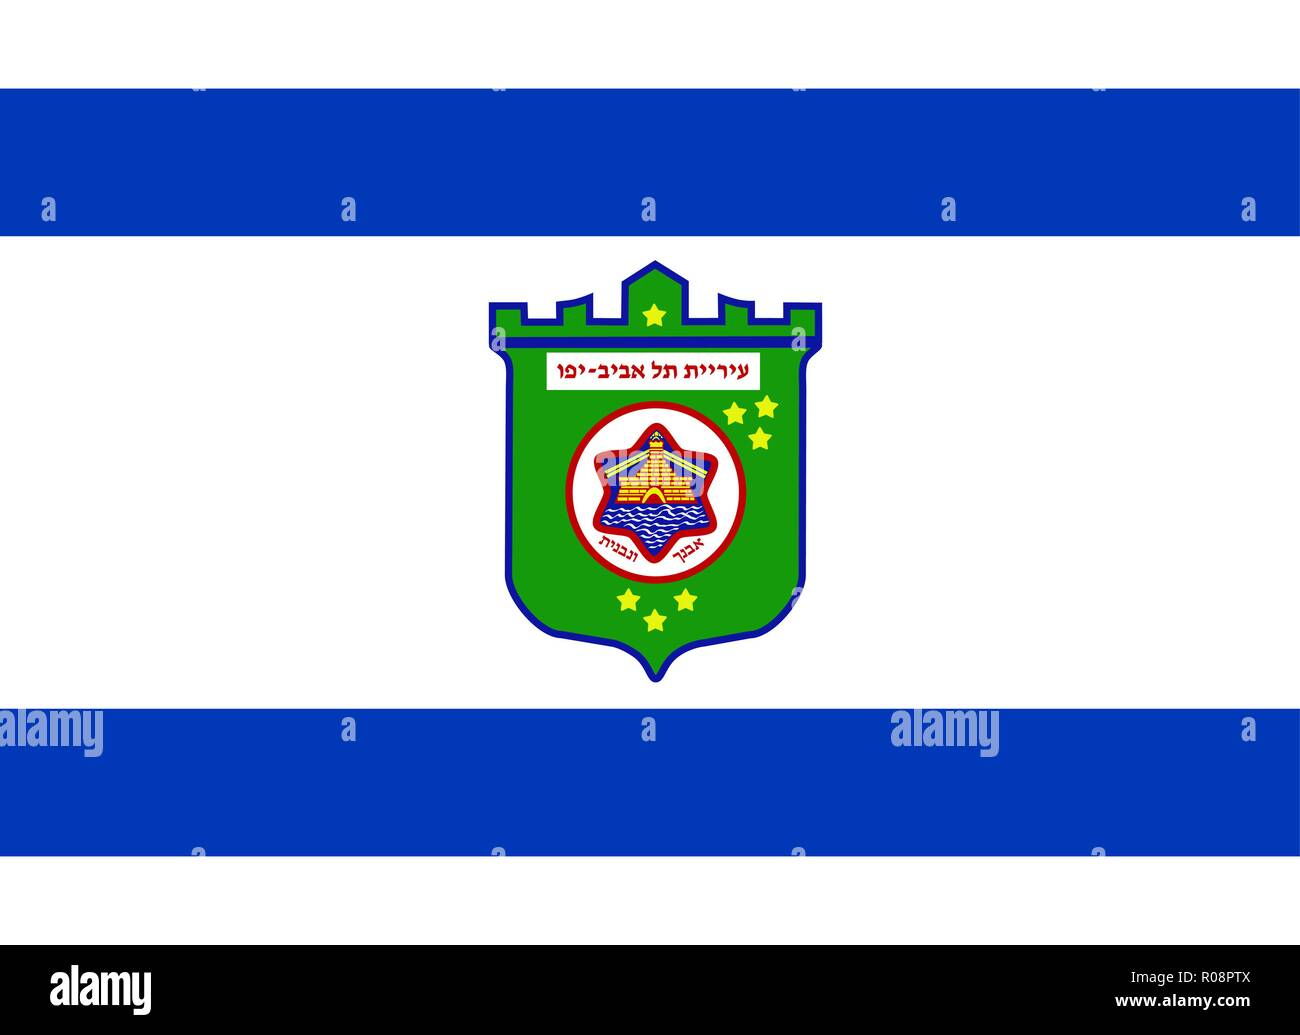 Simple flag of Tel Aviv. Correct size, proportion, colors - Stock Image